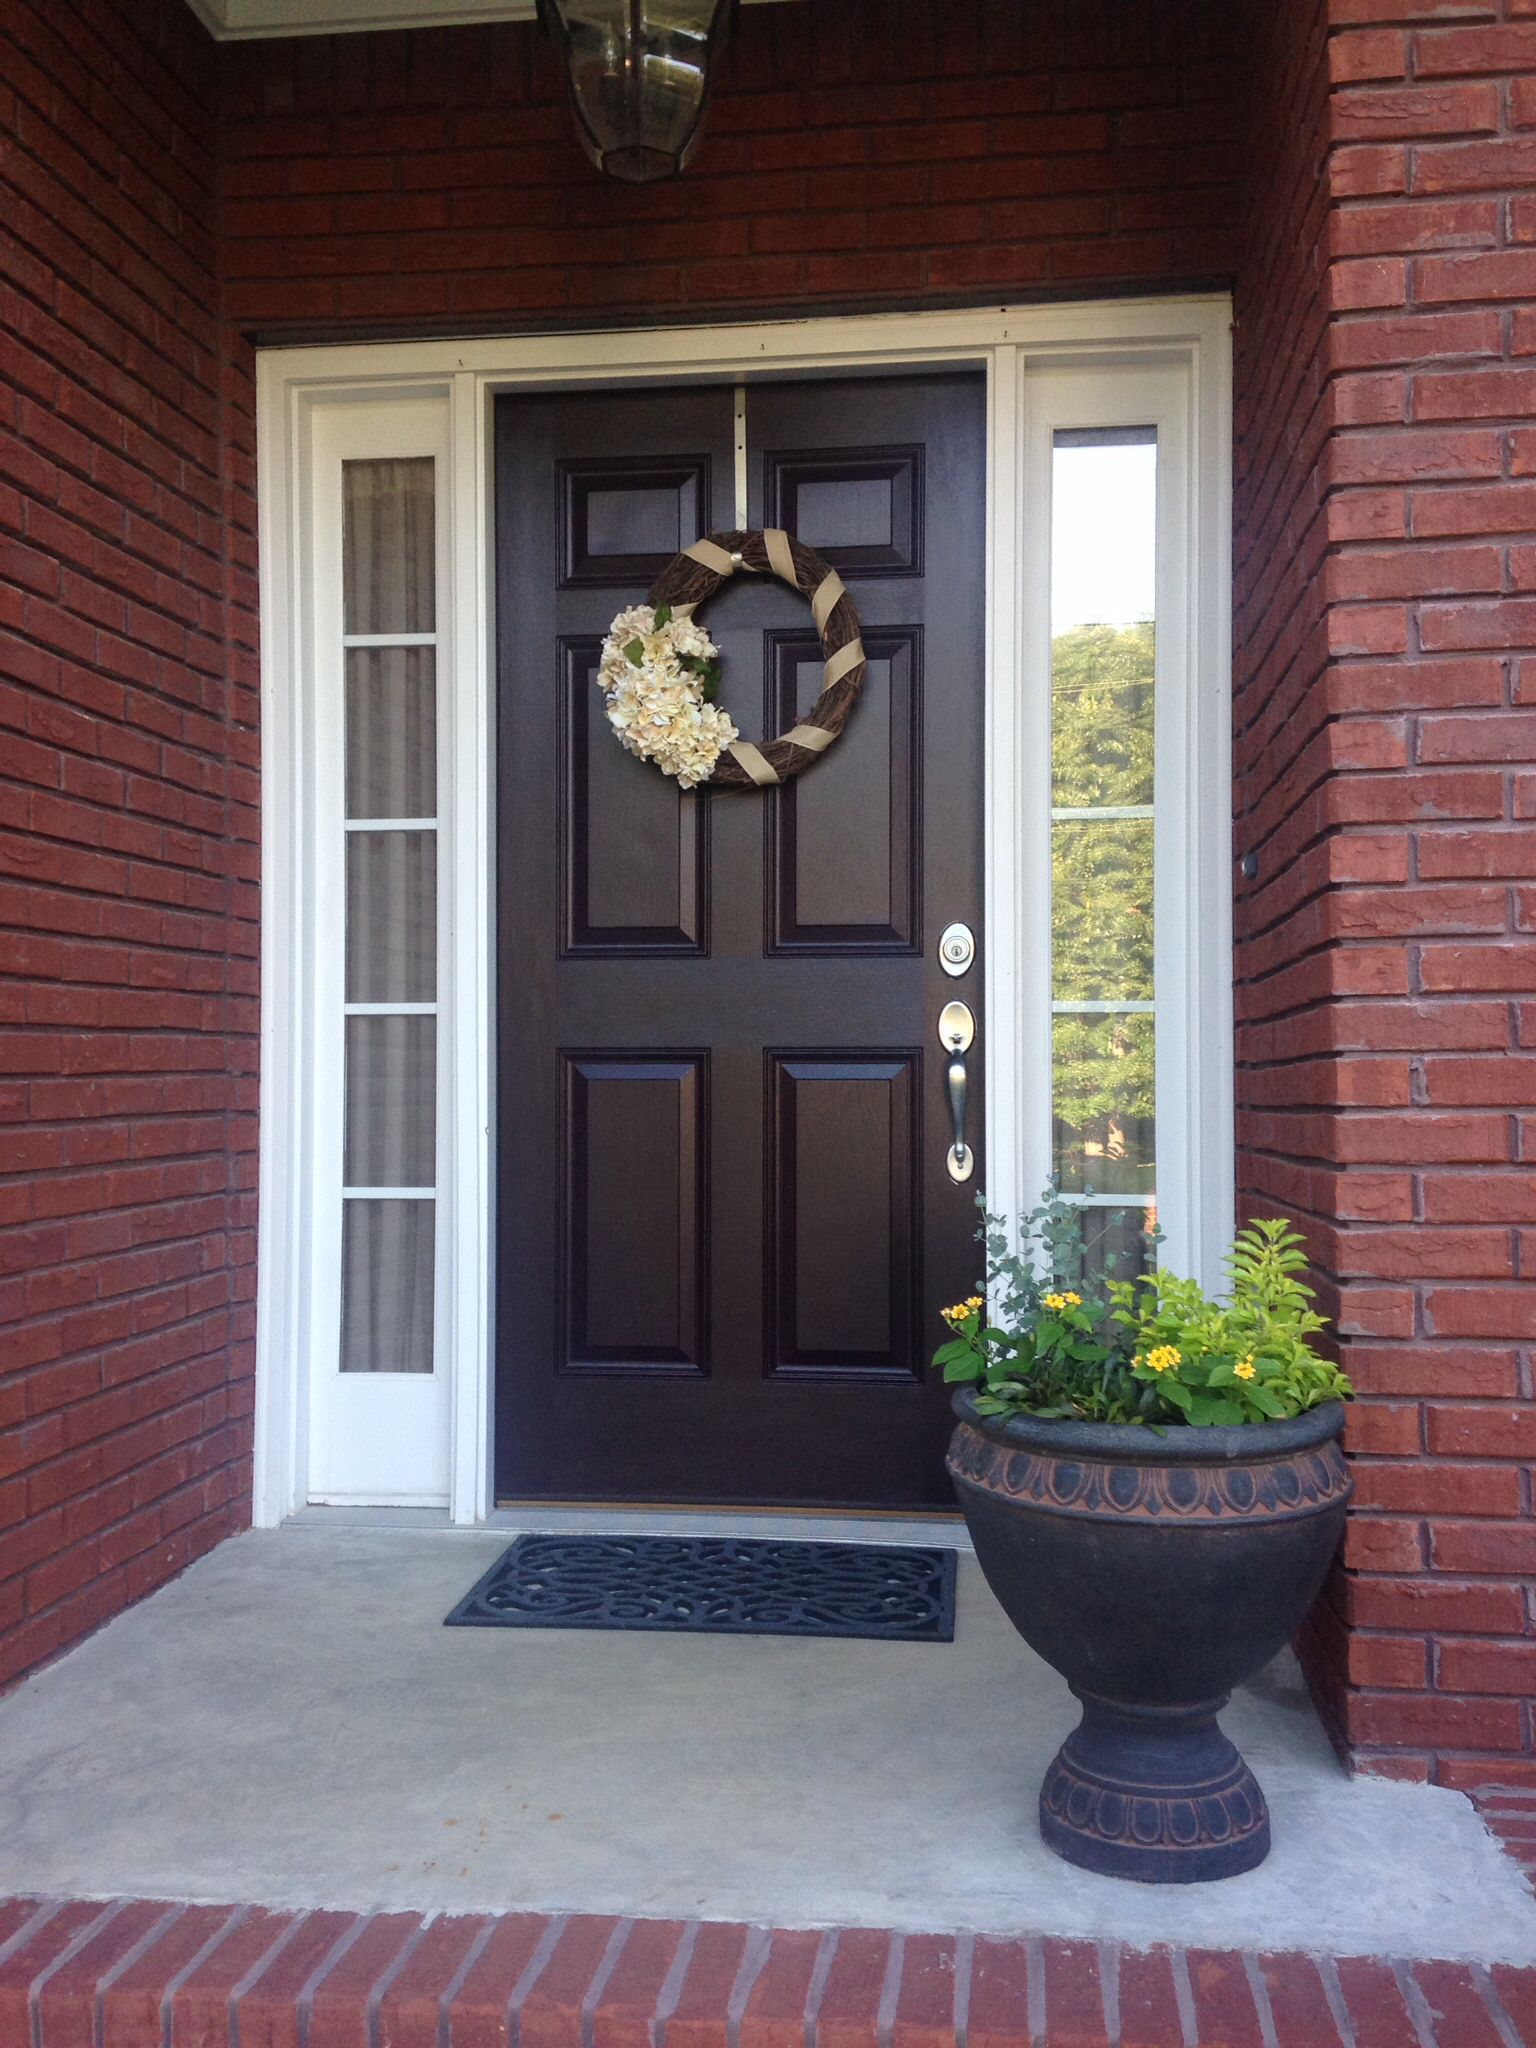 Inspirational Front Entry Doors for Mobile Homes